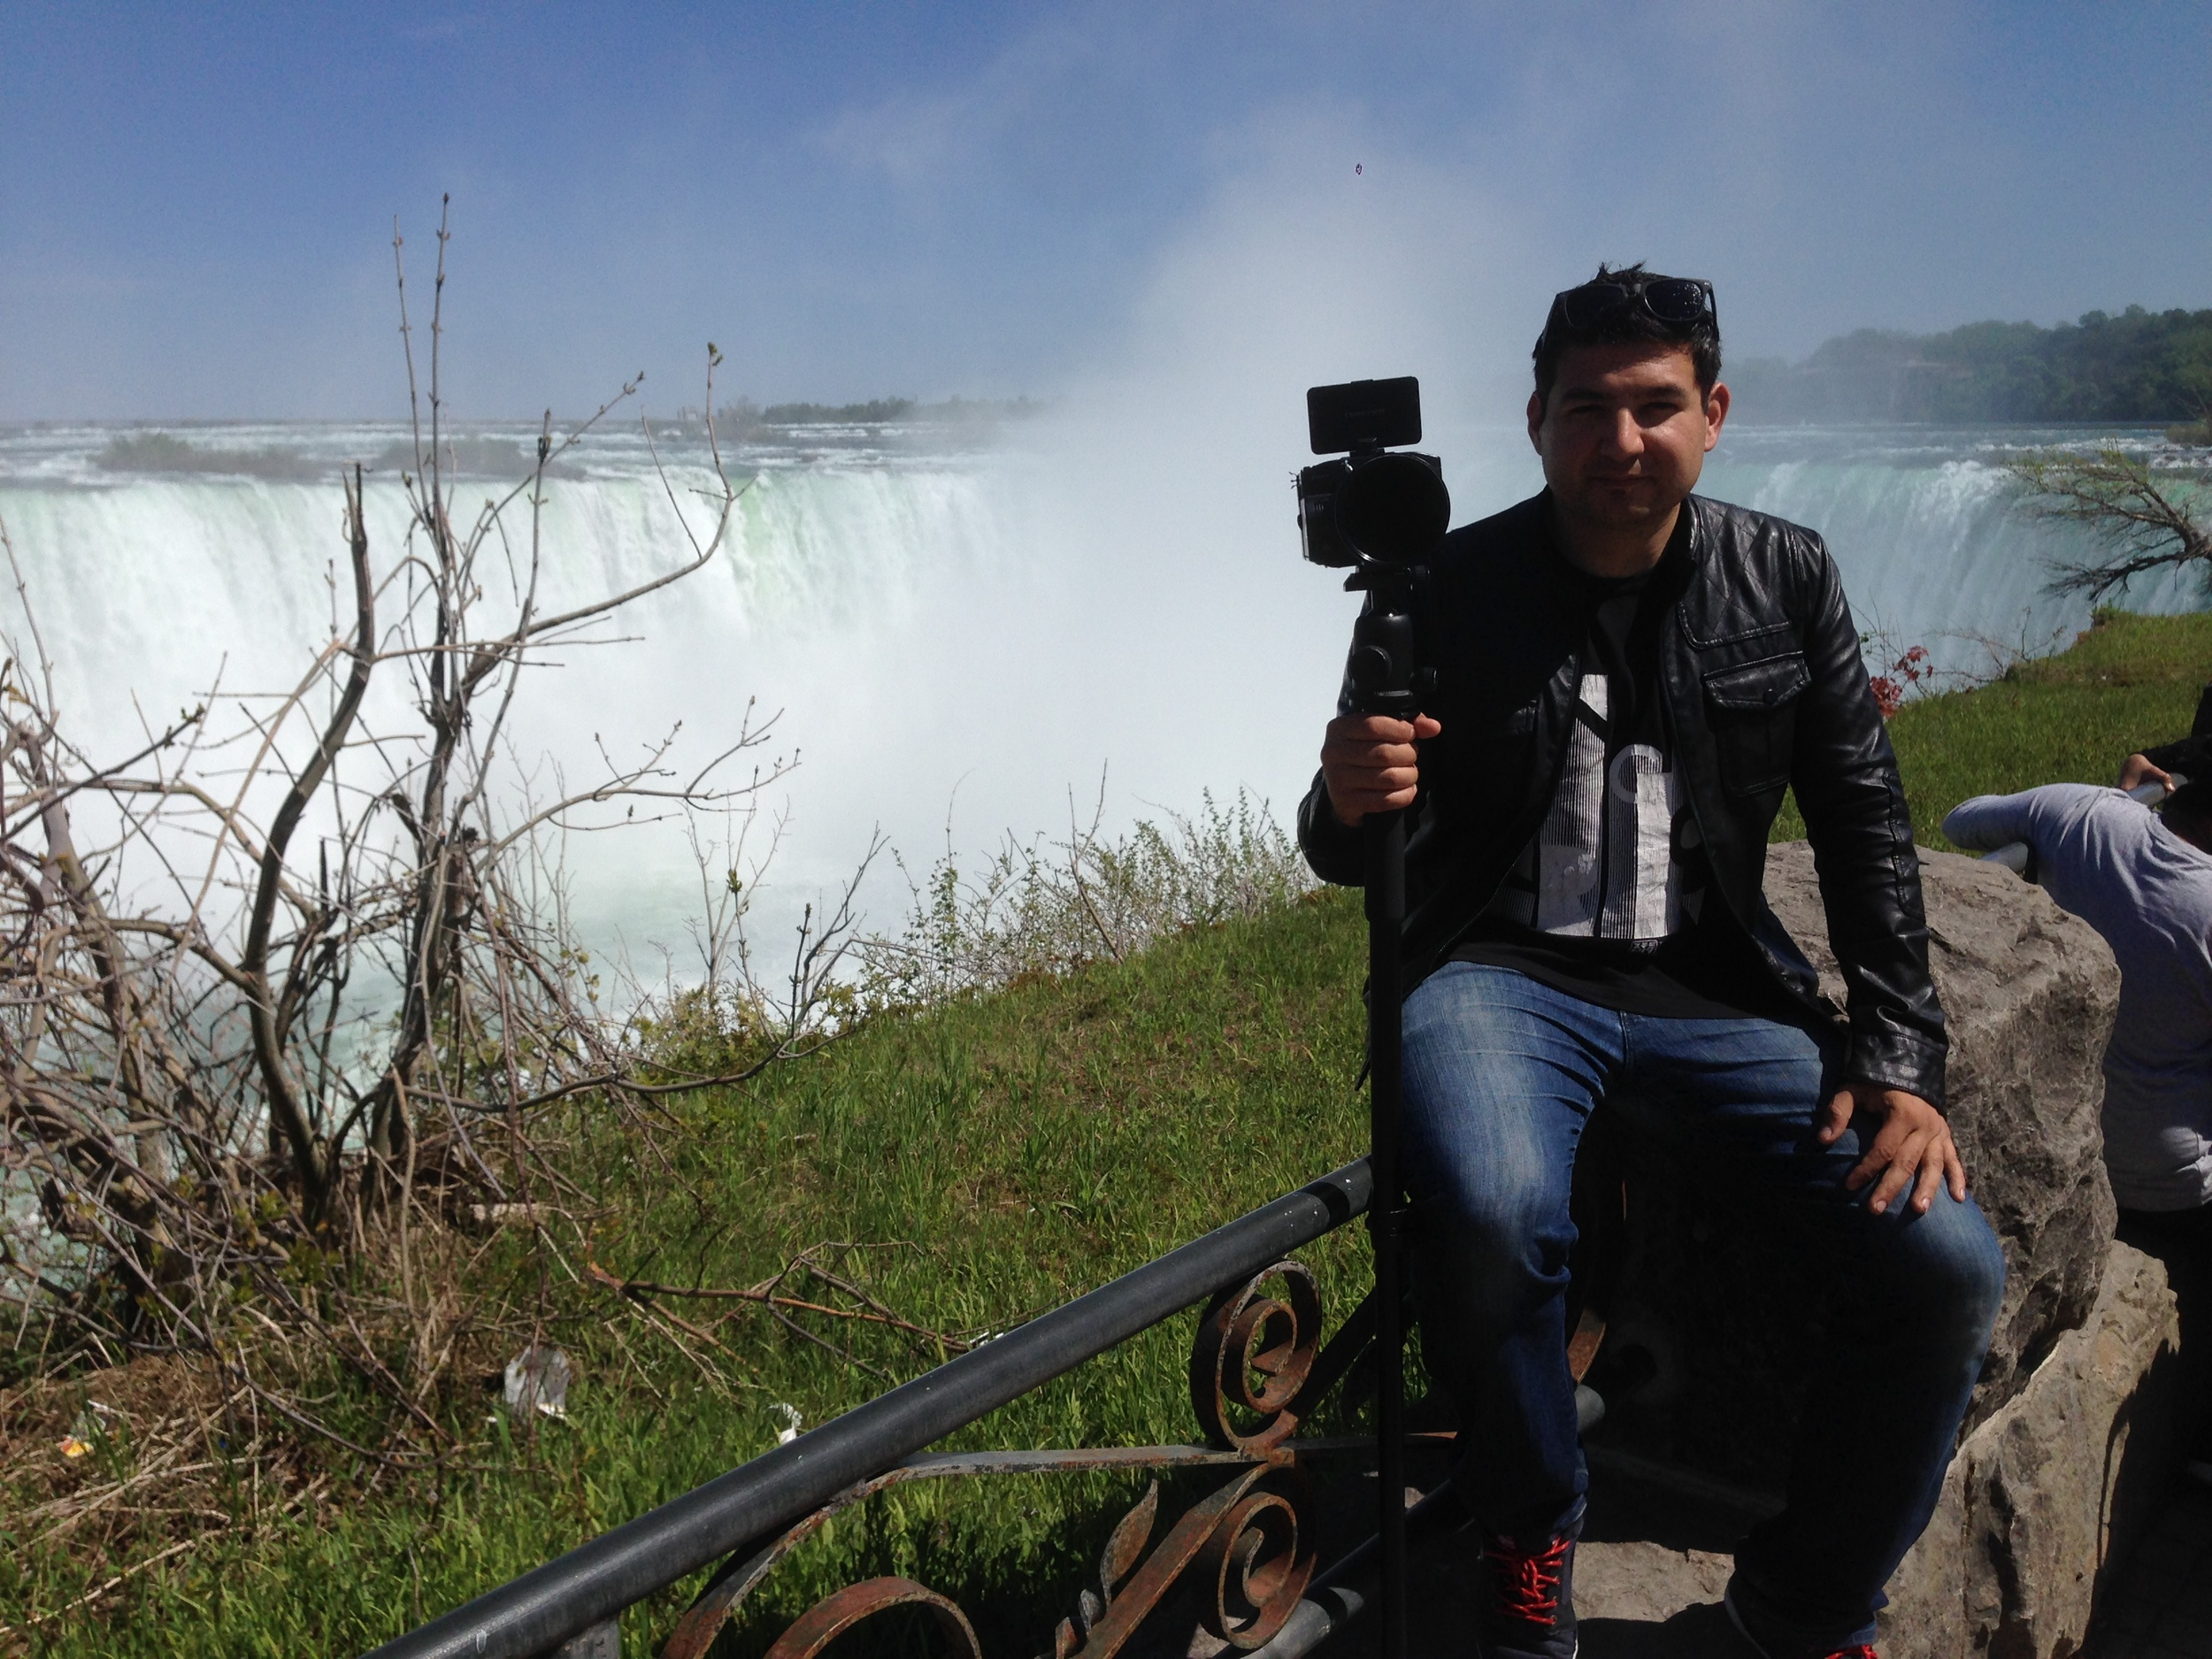 The team takes a detour at Niagra Falls just before leaving Canada.